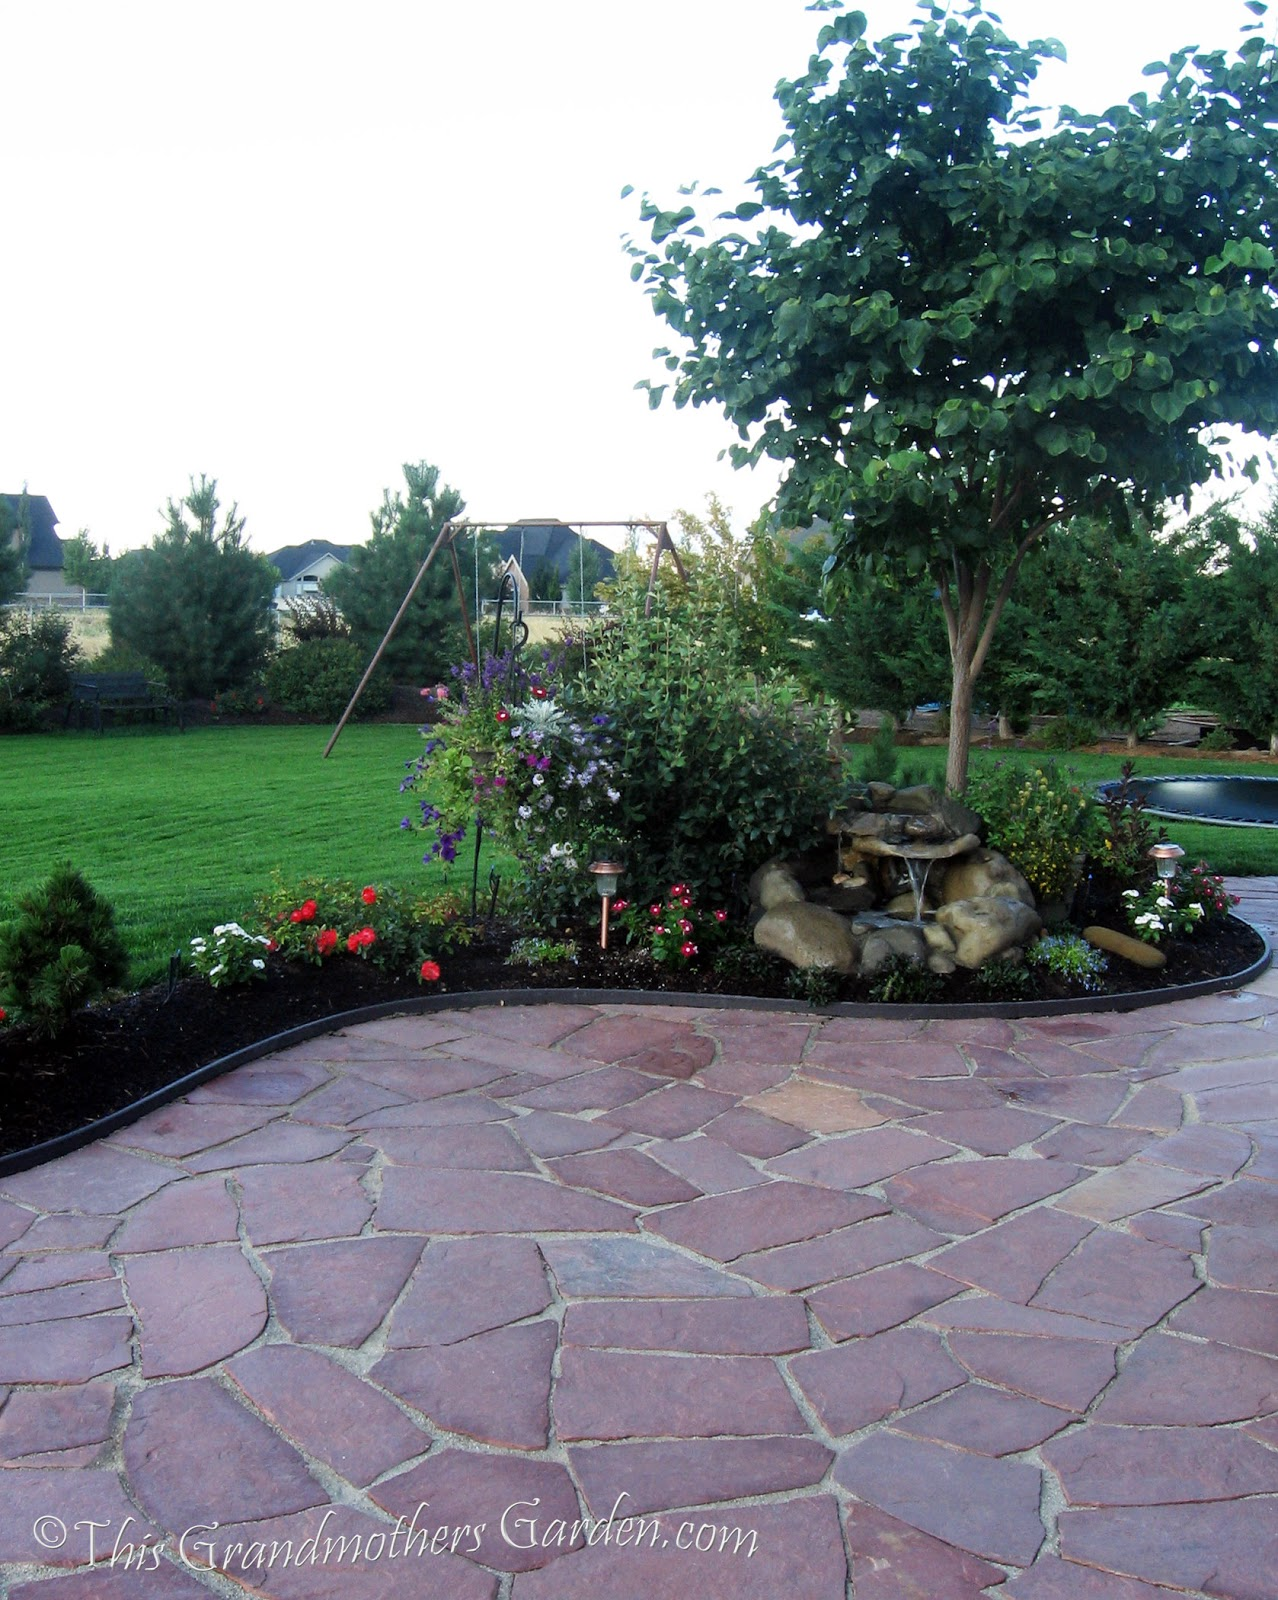 Building A Flagstone Patio : This grandmother s garden you can build a flagstone patio